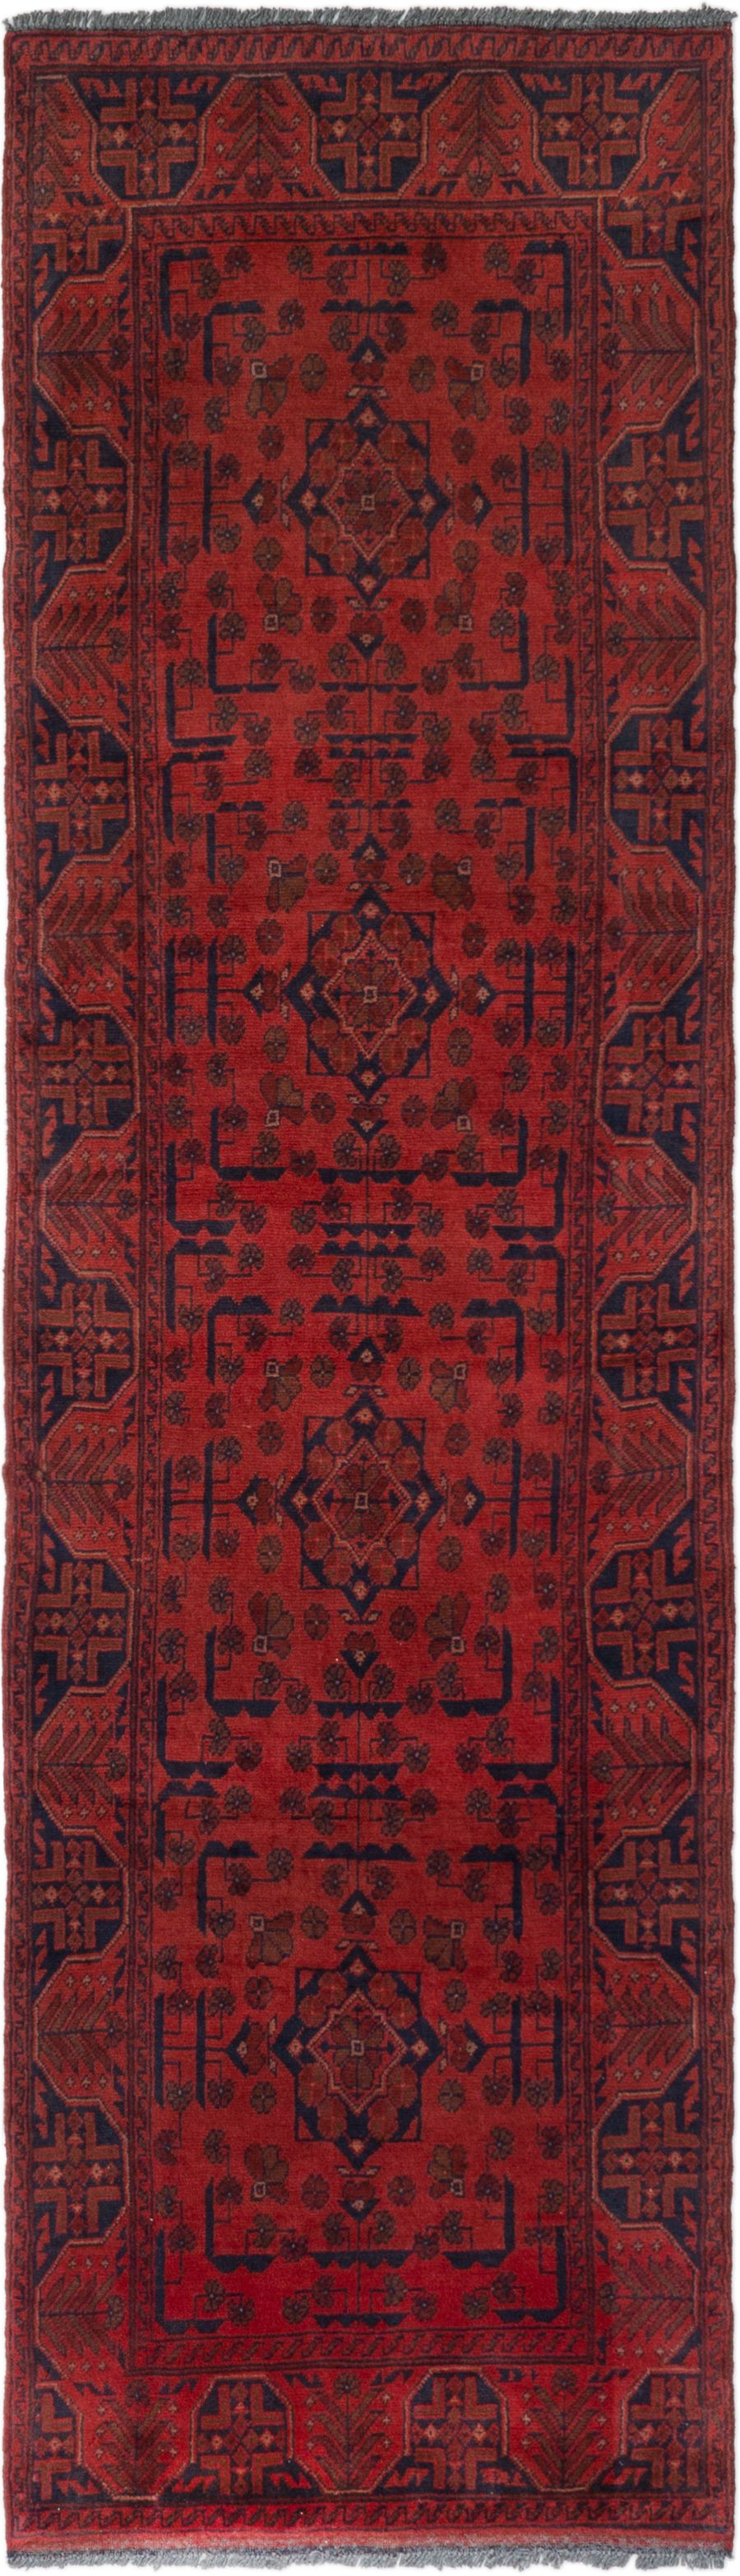 """Hand-knotted Finest Khal Mohammadi Red Wool Rug 2'7"""" x 9'3""""  Size: 2'7"""" x 9'3"""""""